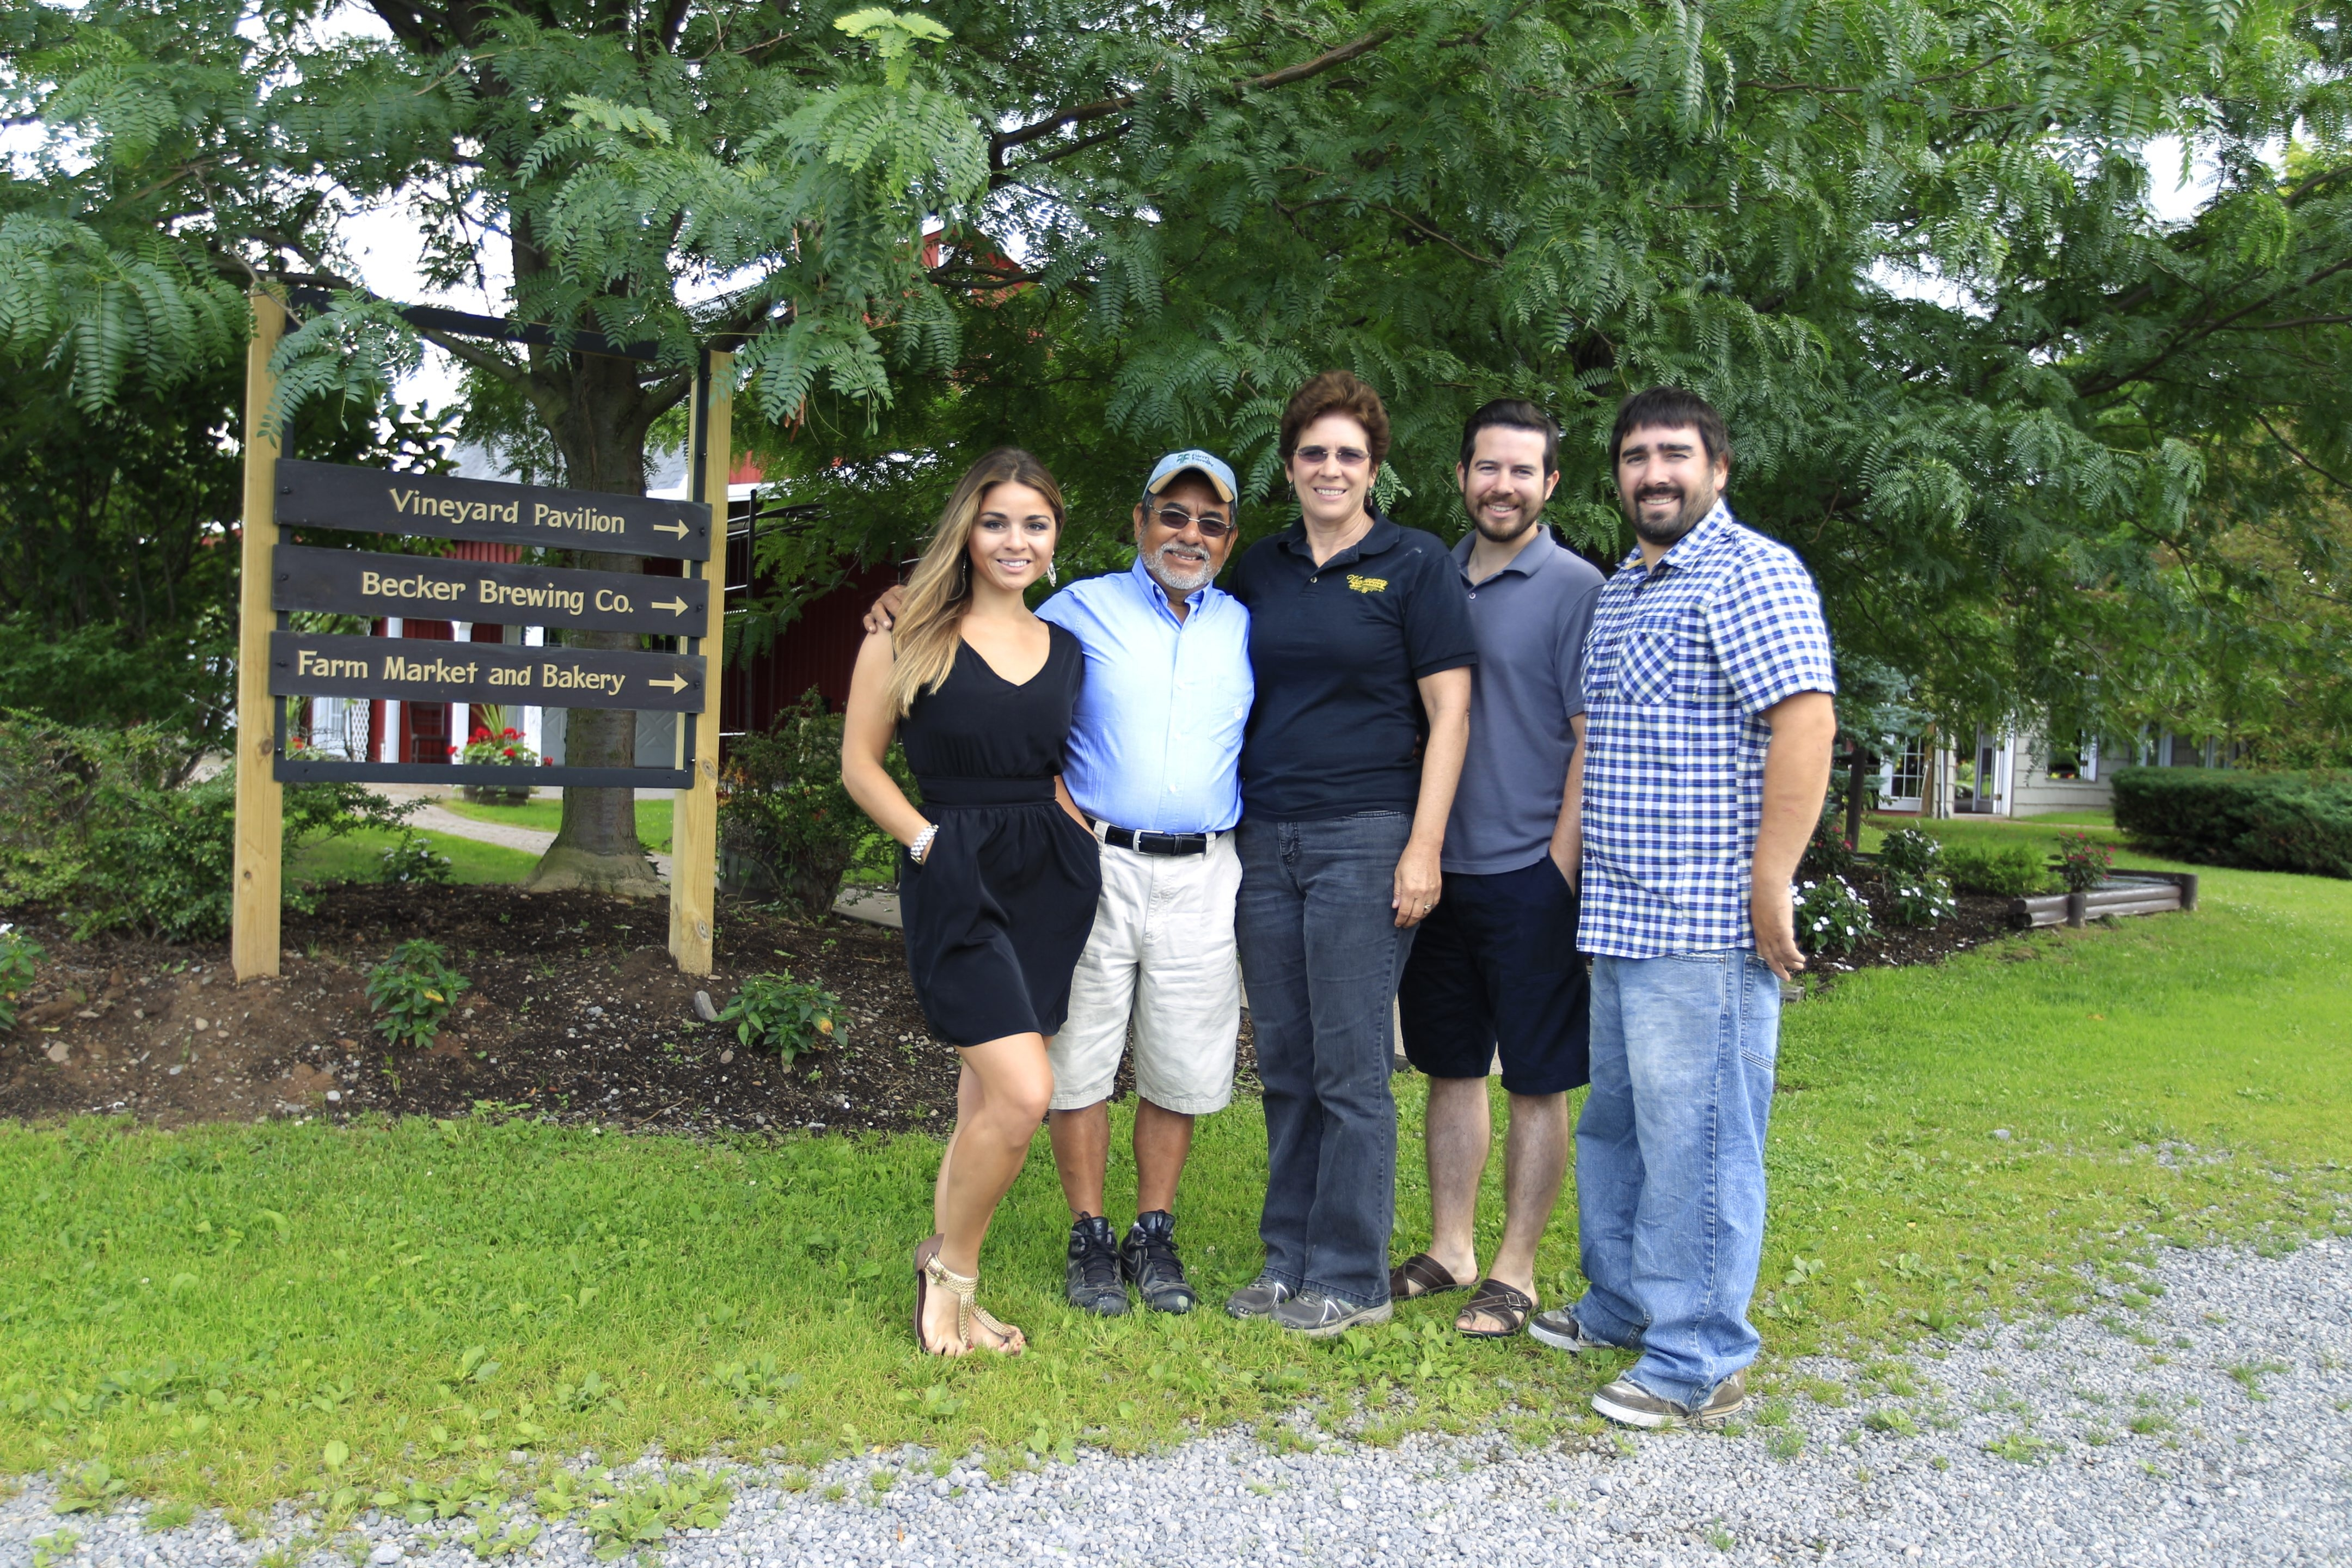 Awaiting next Sunday's milestone event at their farm and winery in Gasport, the Vizcarras – from left, Amanda, Oscar Sr., Melinda, Andres and Oscar Jr. – share passion and pride in an ever-evolving labor of love that has spanned five generations.